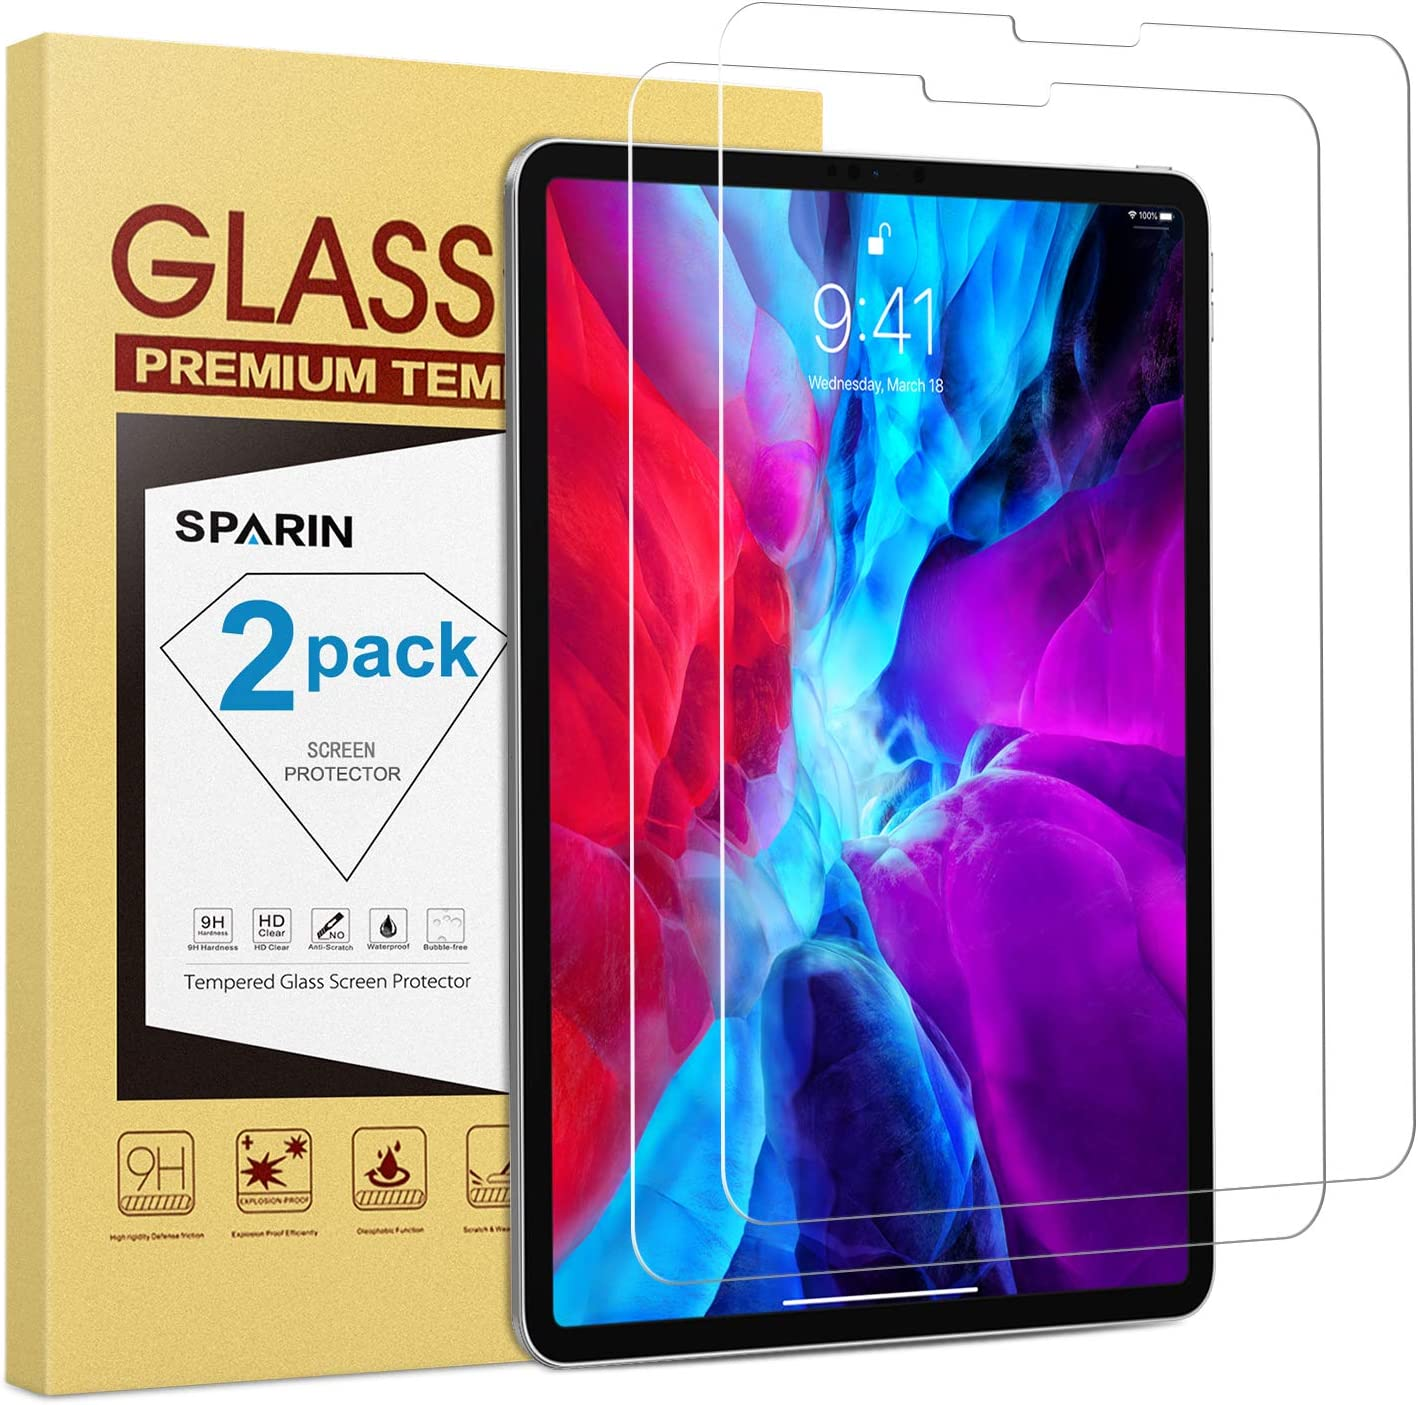 SPARIN (2 Pack) Screen Protector for iPad Pro 12.9 inch (2020 & 2018, 4th and 3rd Generation), Tempered Glass Screen Protector Work with Face ID / Apple Pencil